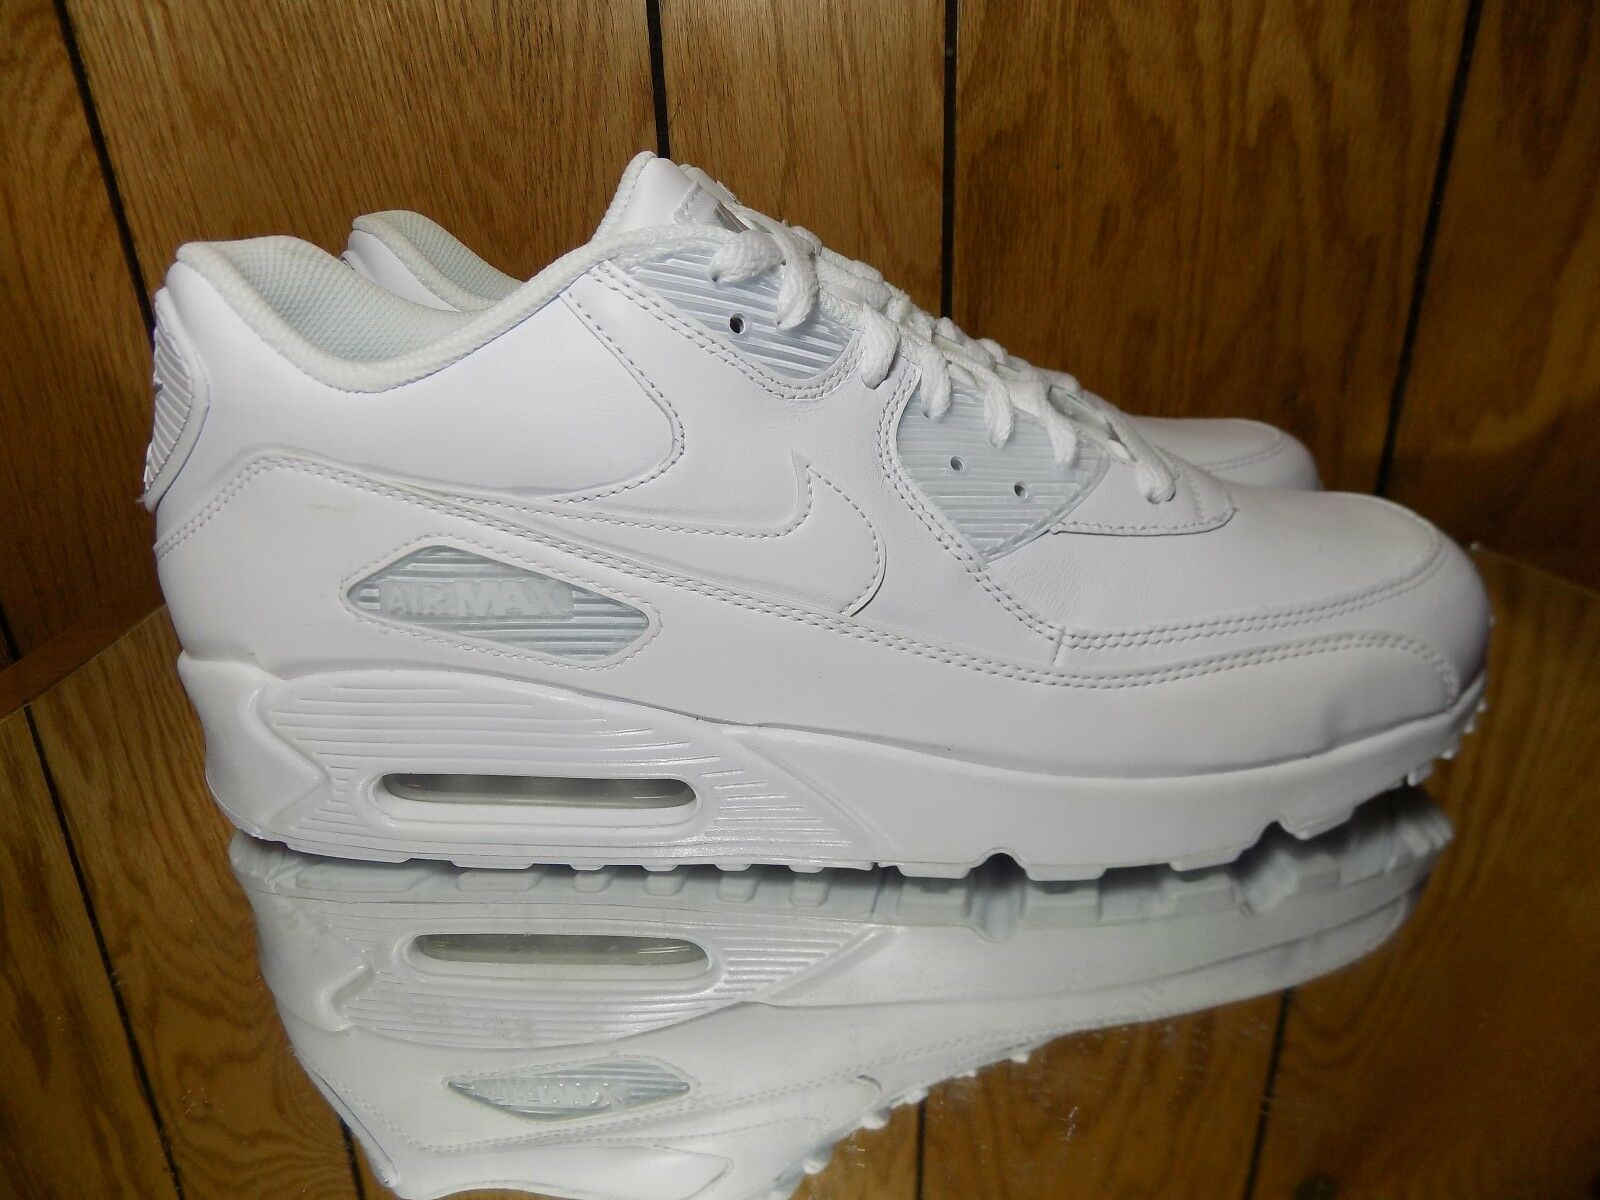 Nike Air Max 90 Leather men lifestyle sneakers NEW all white 302519-113 s 12.5